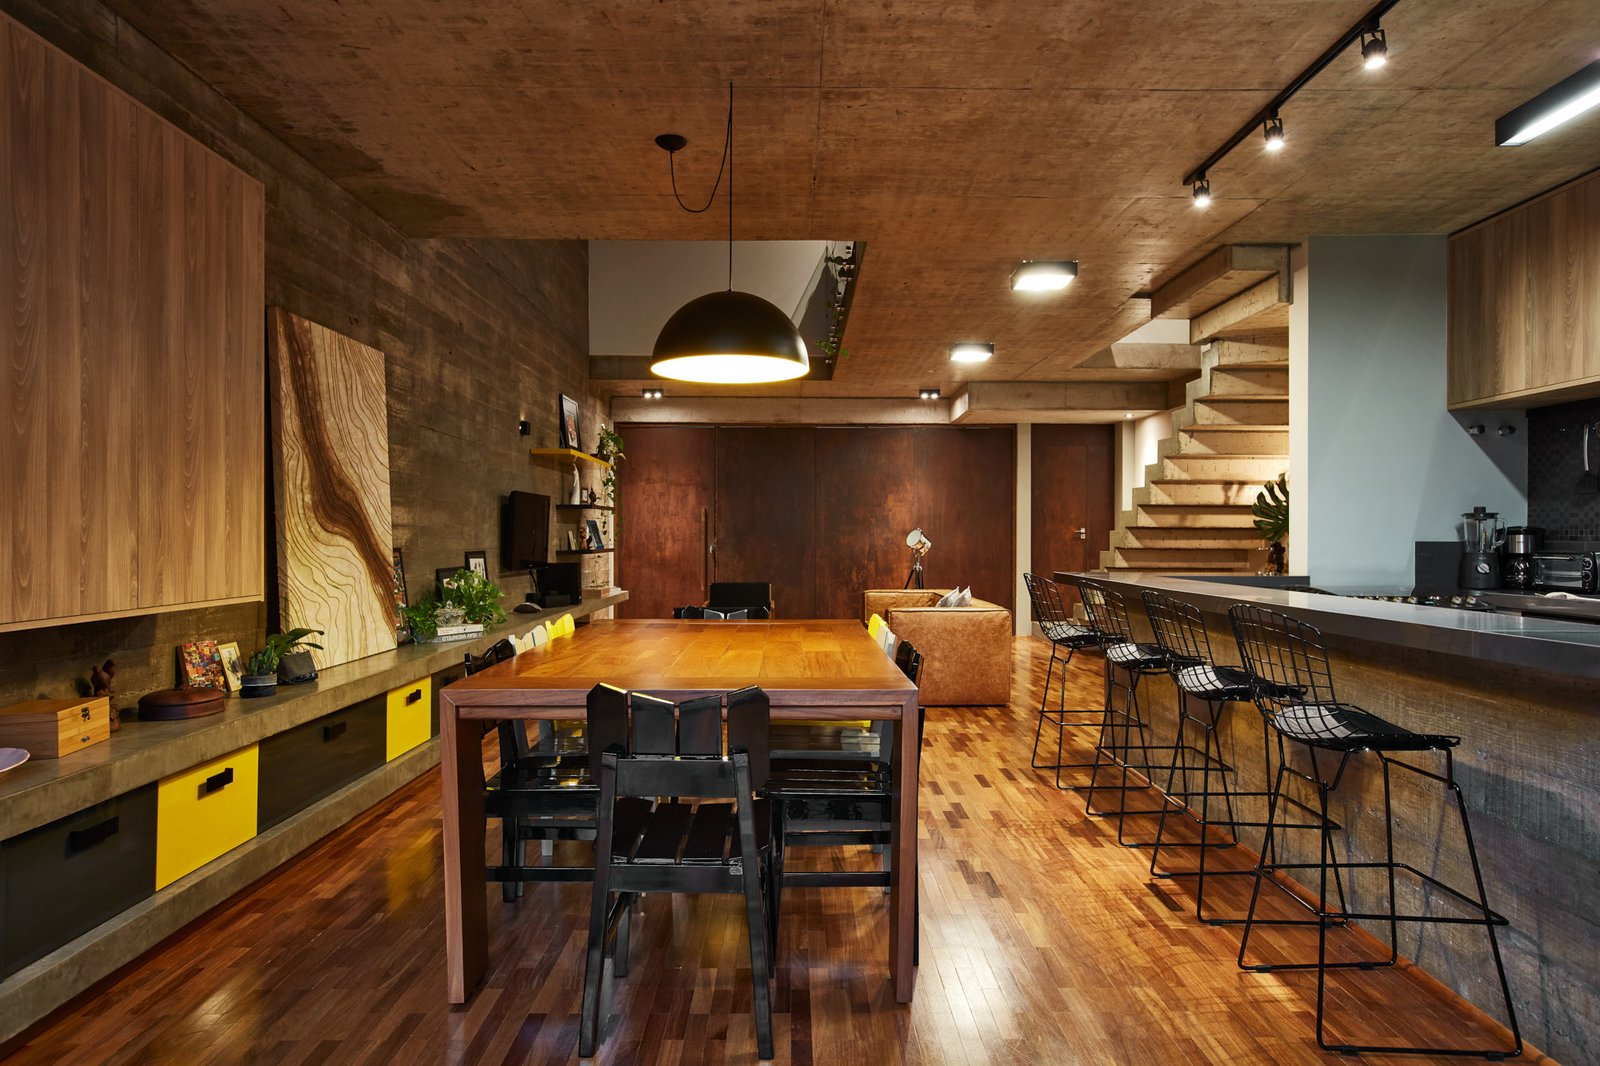 Dining, Medium Hardwood, Table, Chair, Track, Pendant, Ceiling, Stools, Shelves, and Bar The dining and kitchen on the ground floor.  Best Dining Ceiling Shelves Track Table Photos from This Slender Concrete Home in Brazil Feels Like an Urban Jungle